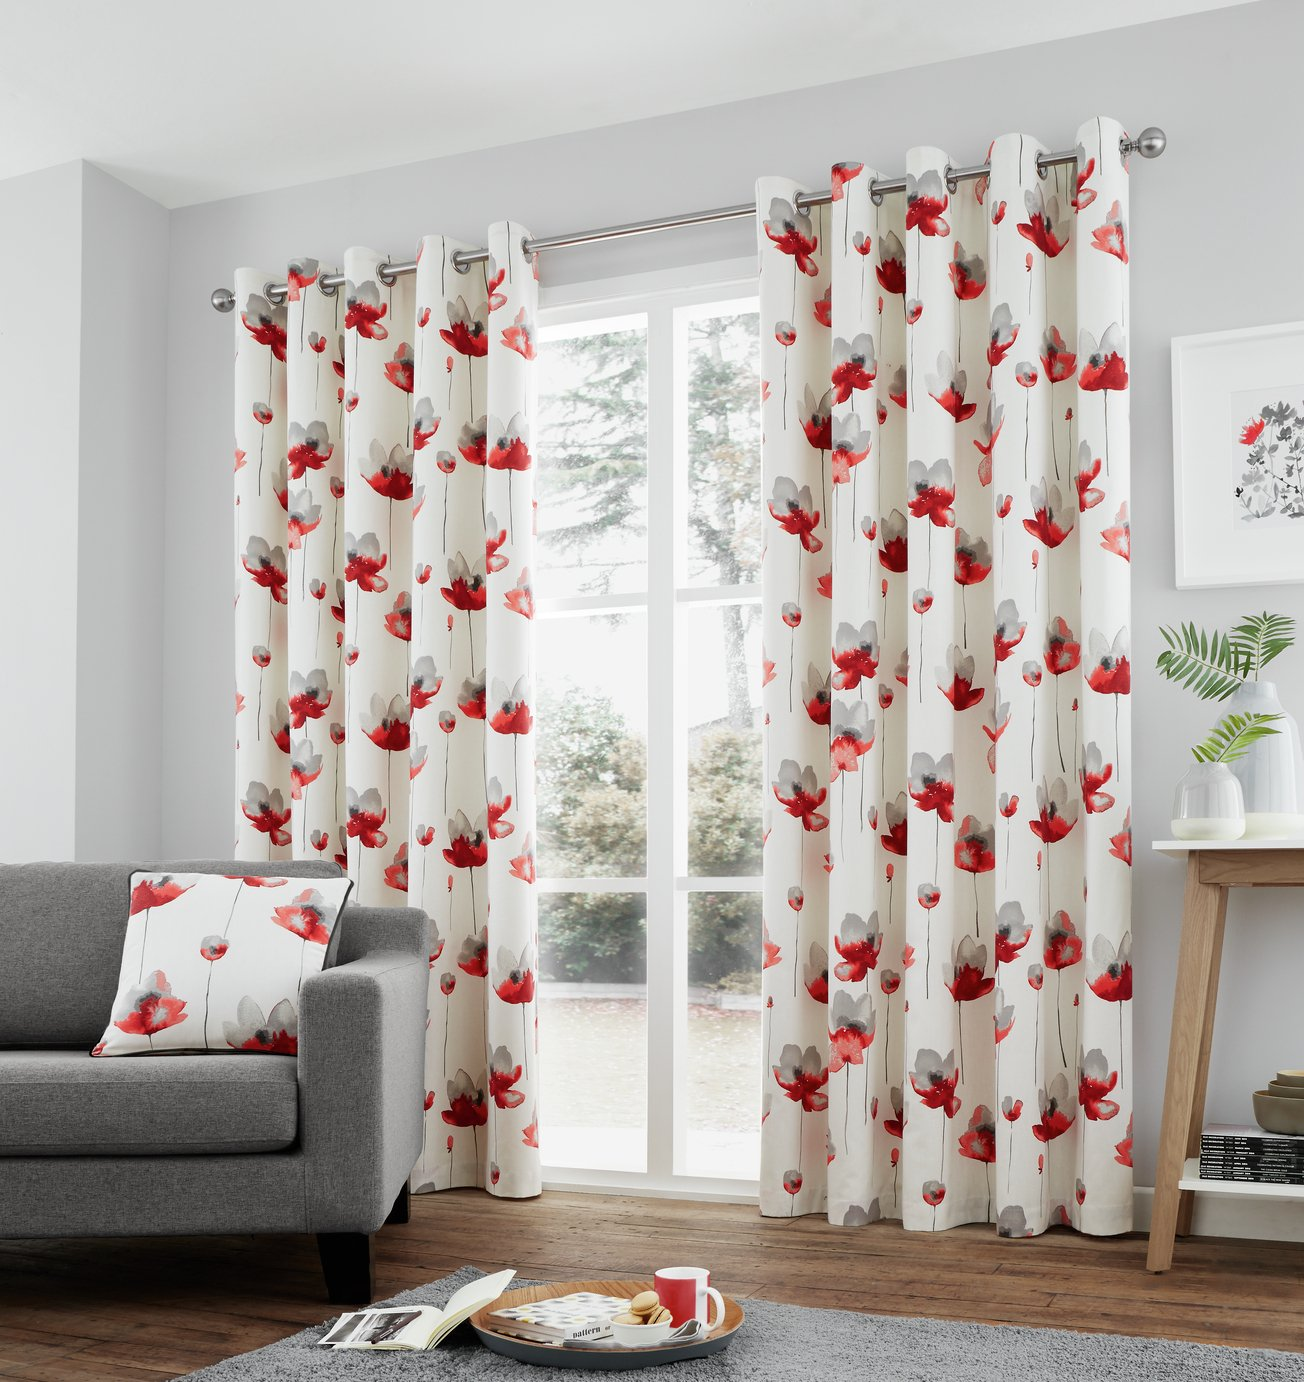 Fusion Kiera Lined Curtains - 229x229cm - Red